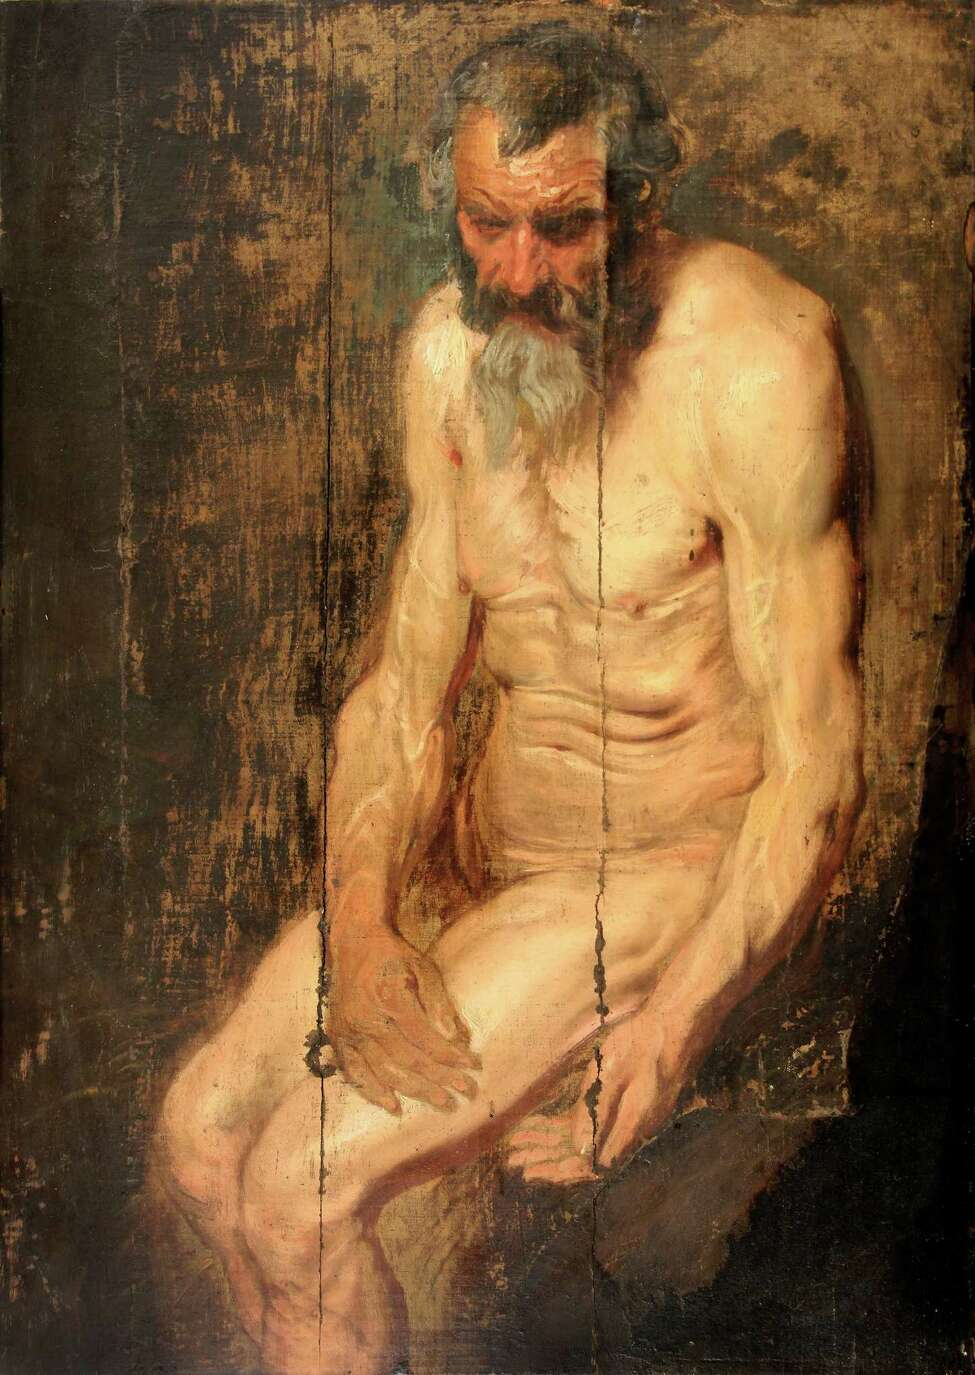 An oil sketch of Saint Jerome by Anthony van Dyck, which was the basis for van Dyck's later, full-size oil painting circa 1620, was discovered by Hudson-based art collector Albert B. Roberts. It is being displayted at the Albany Institute of History & Art from Sept. 18 to Oct. 6, 2019. (Photo courtesy AIHA.)